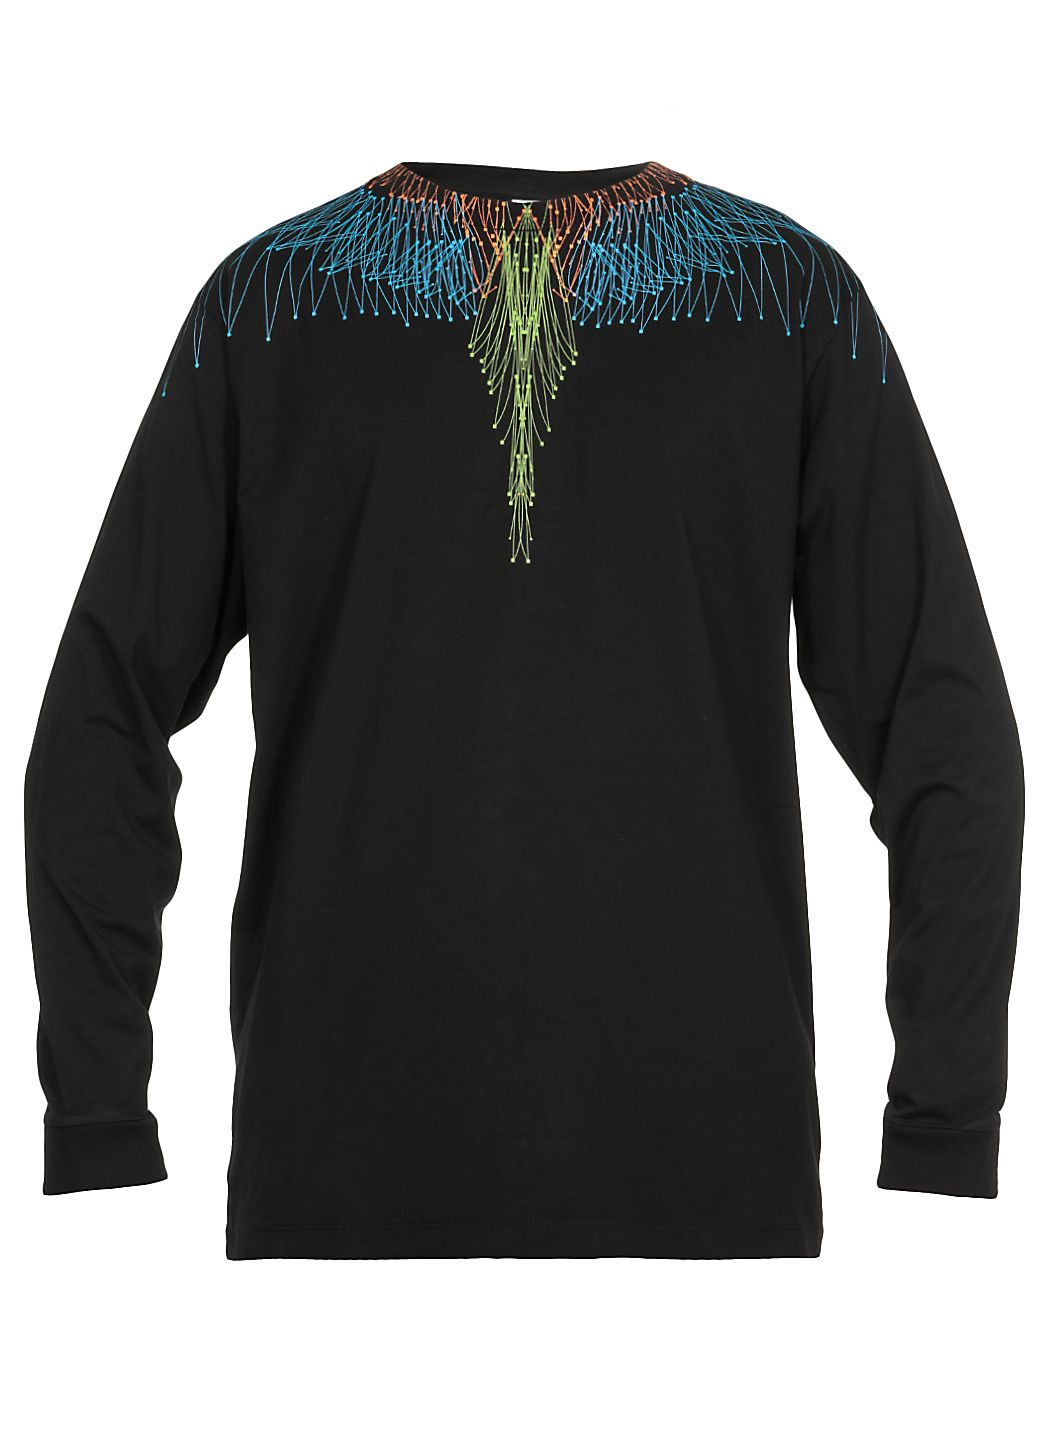 Bezier wings basic T-shirt